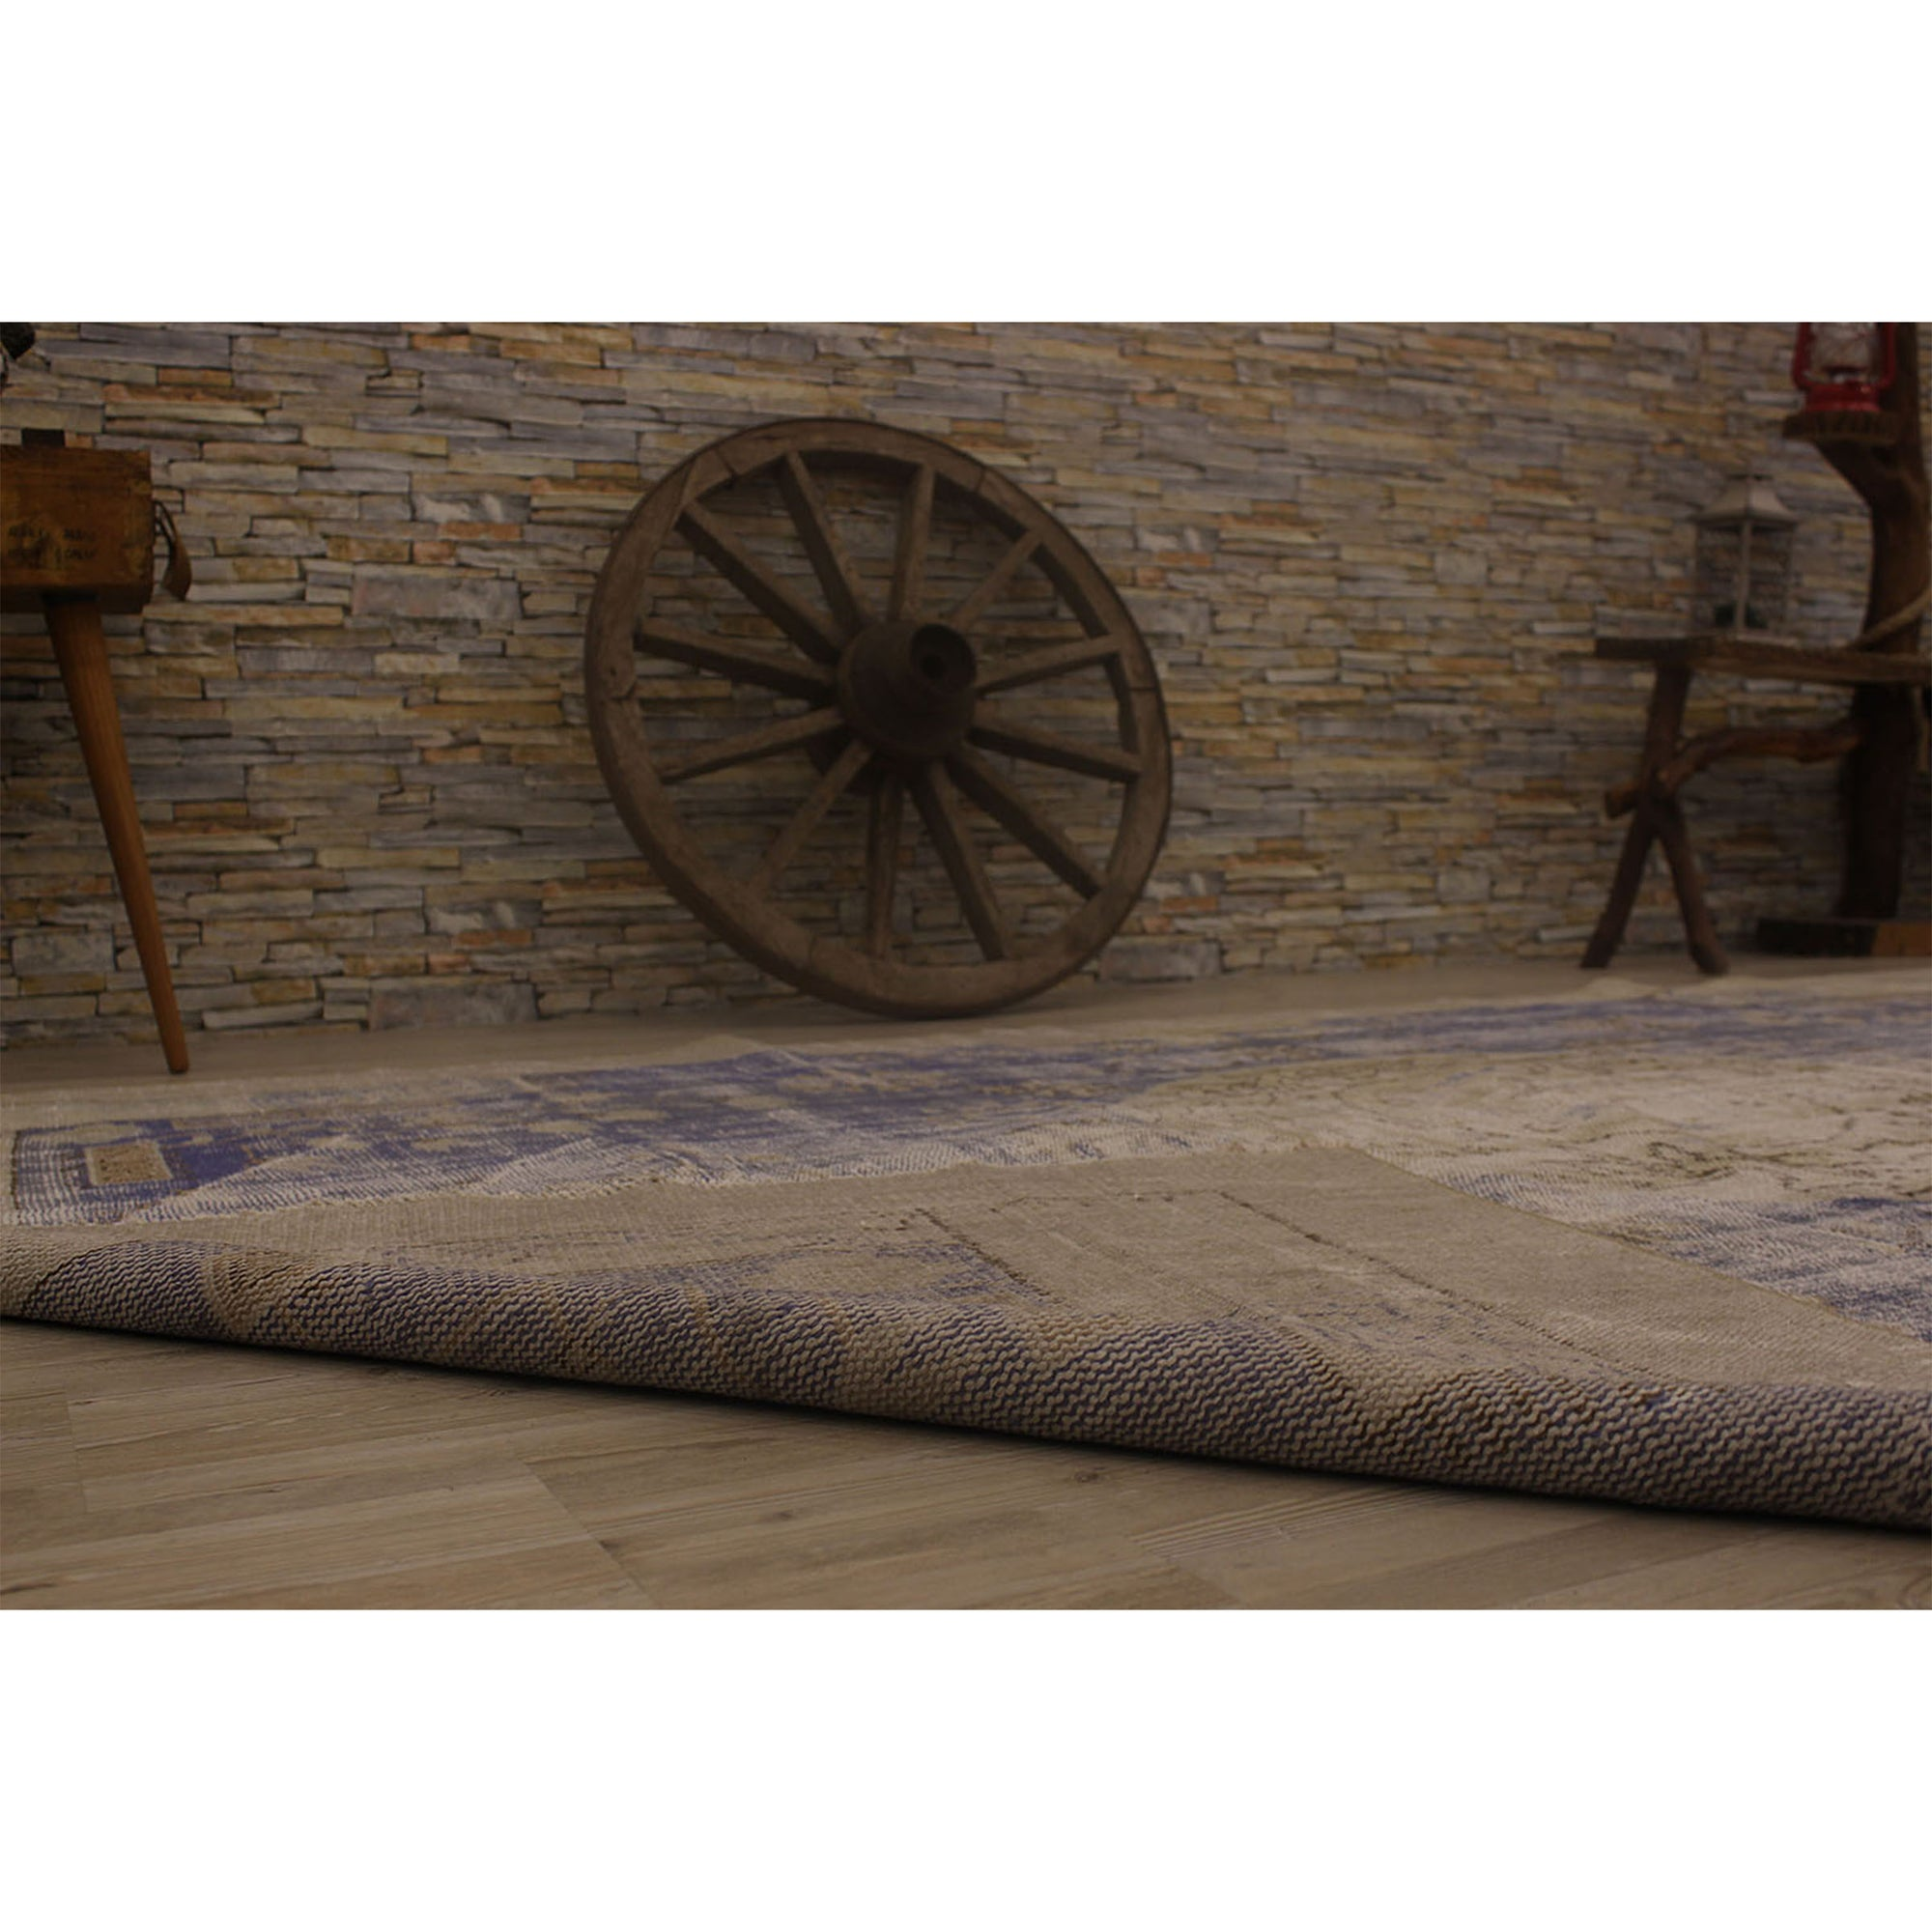 187 X 289 Anatolian Hand Knotted Carpet Vintage Style 60N2443 -  187 × 289 سجادة أناضولية معقودة يدويًا - Shop Online Furniture and Home Decor Store in Dubai, UAE at ebarza